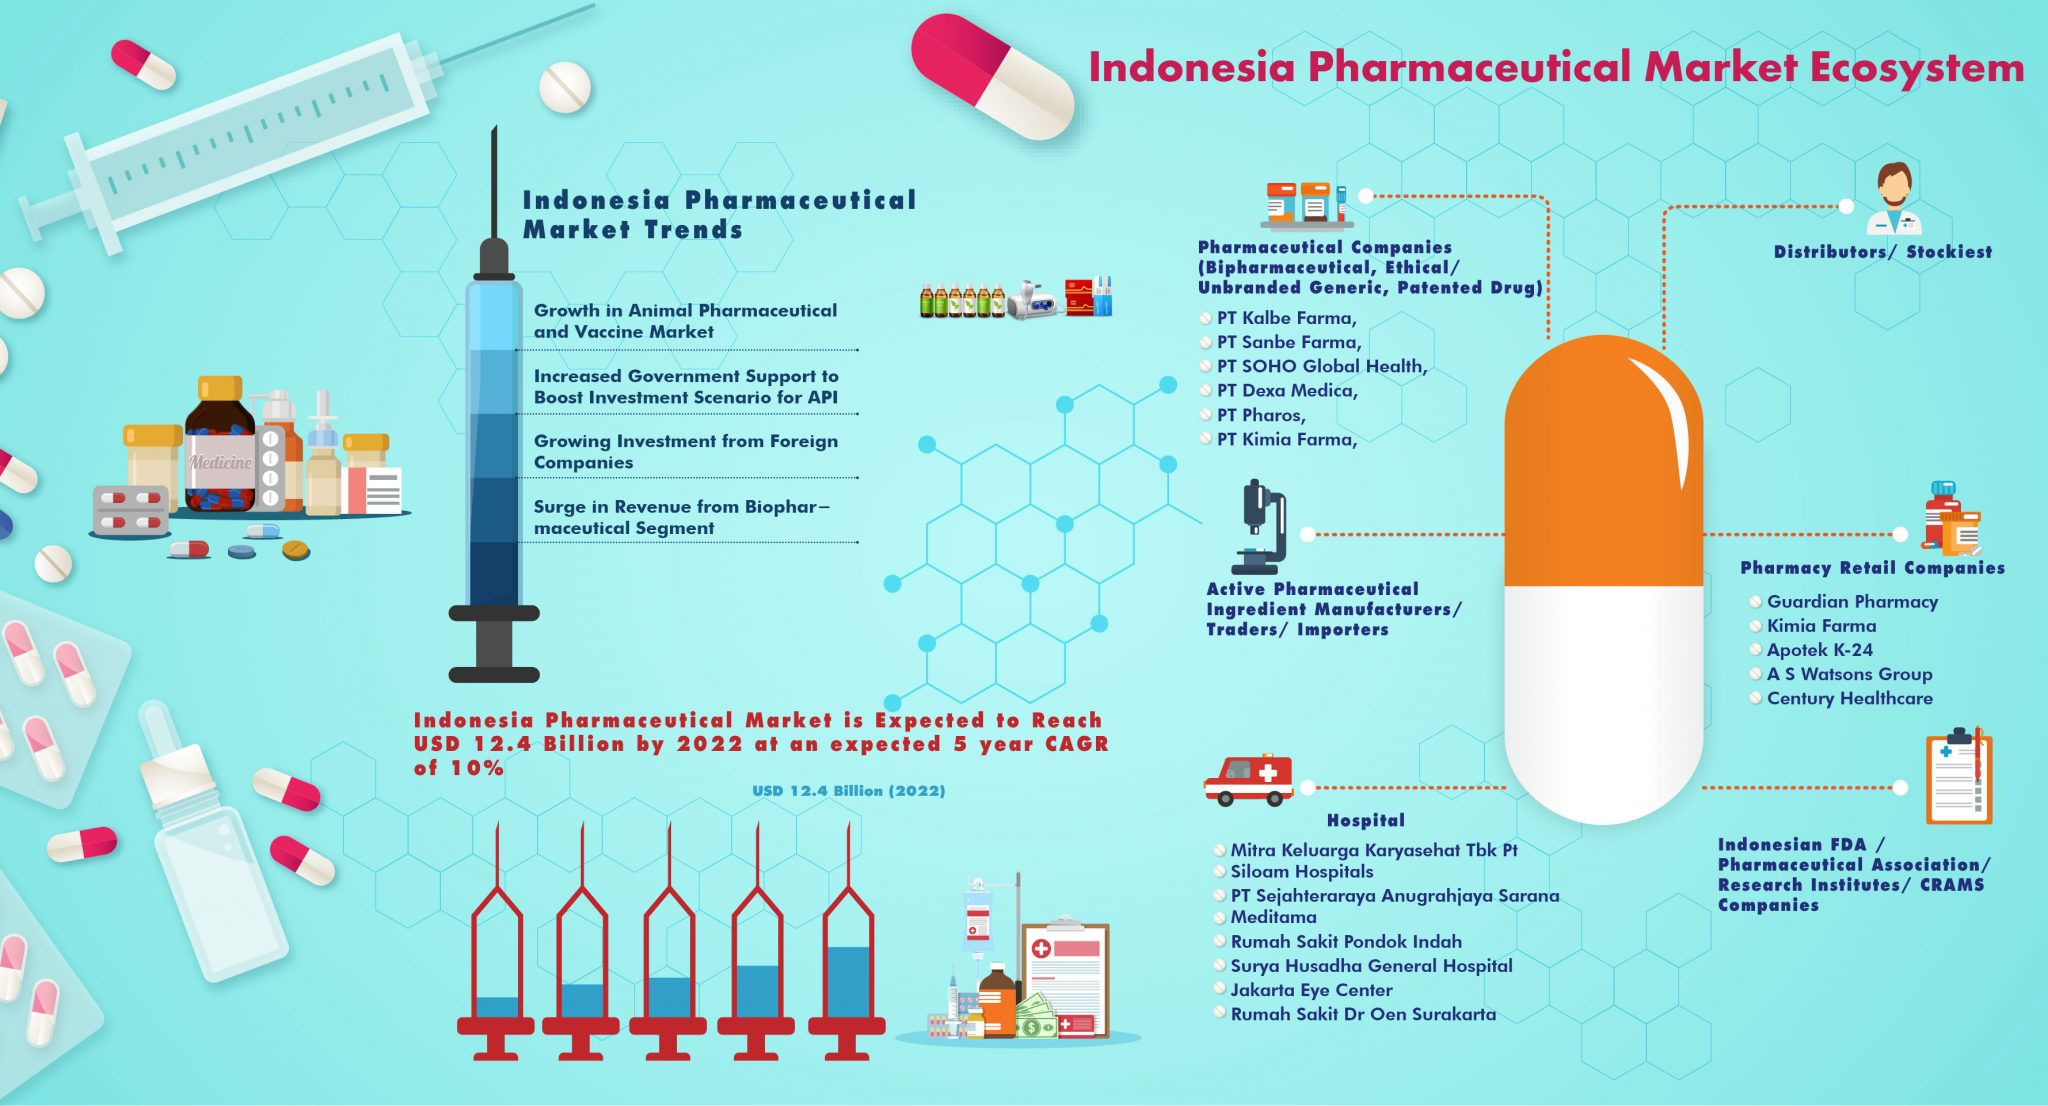 Indonesia Pharmaceutical Market Ecosystem